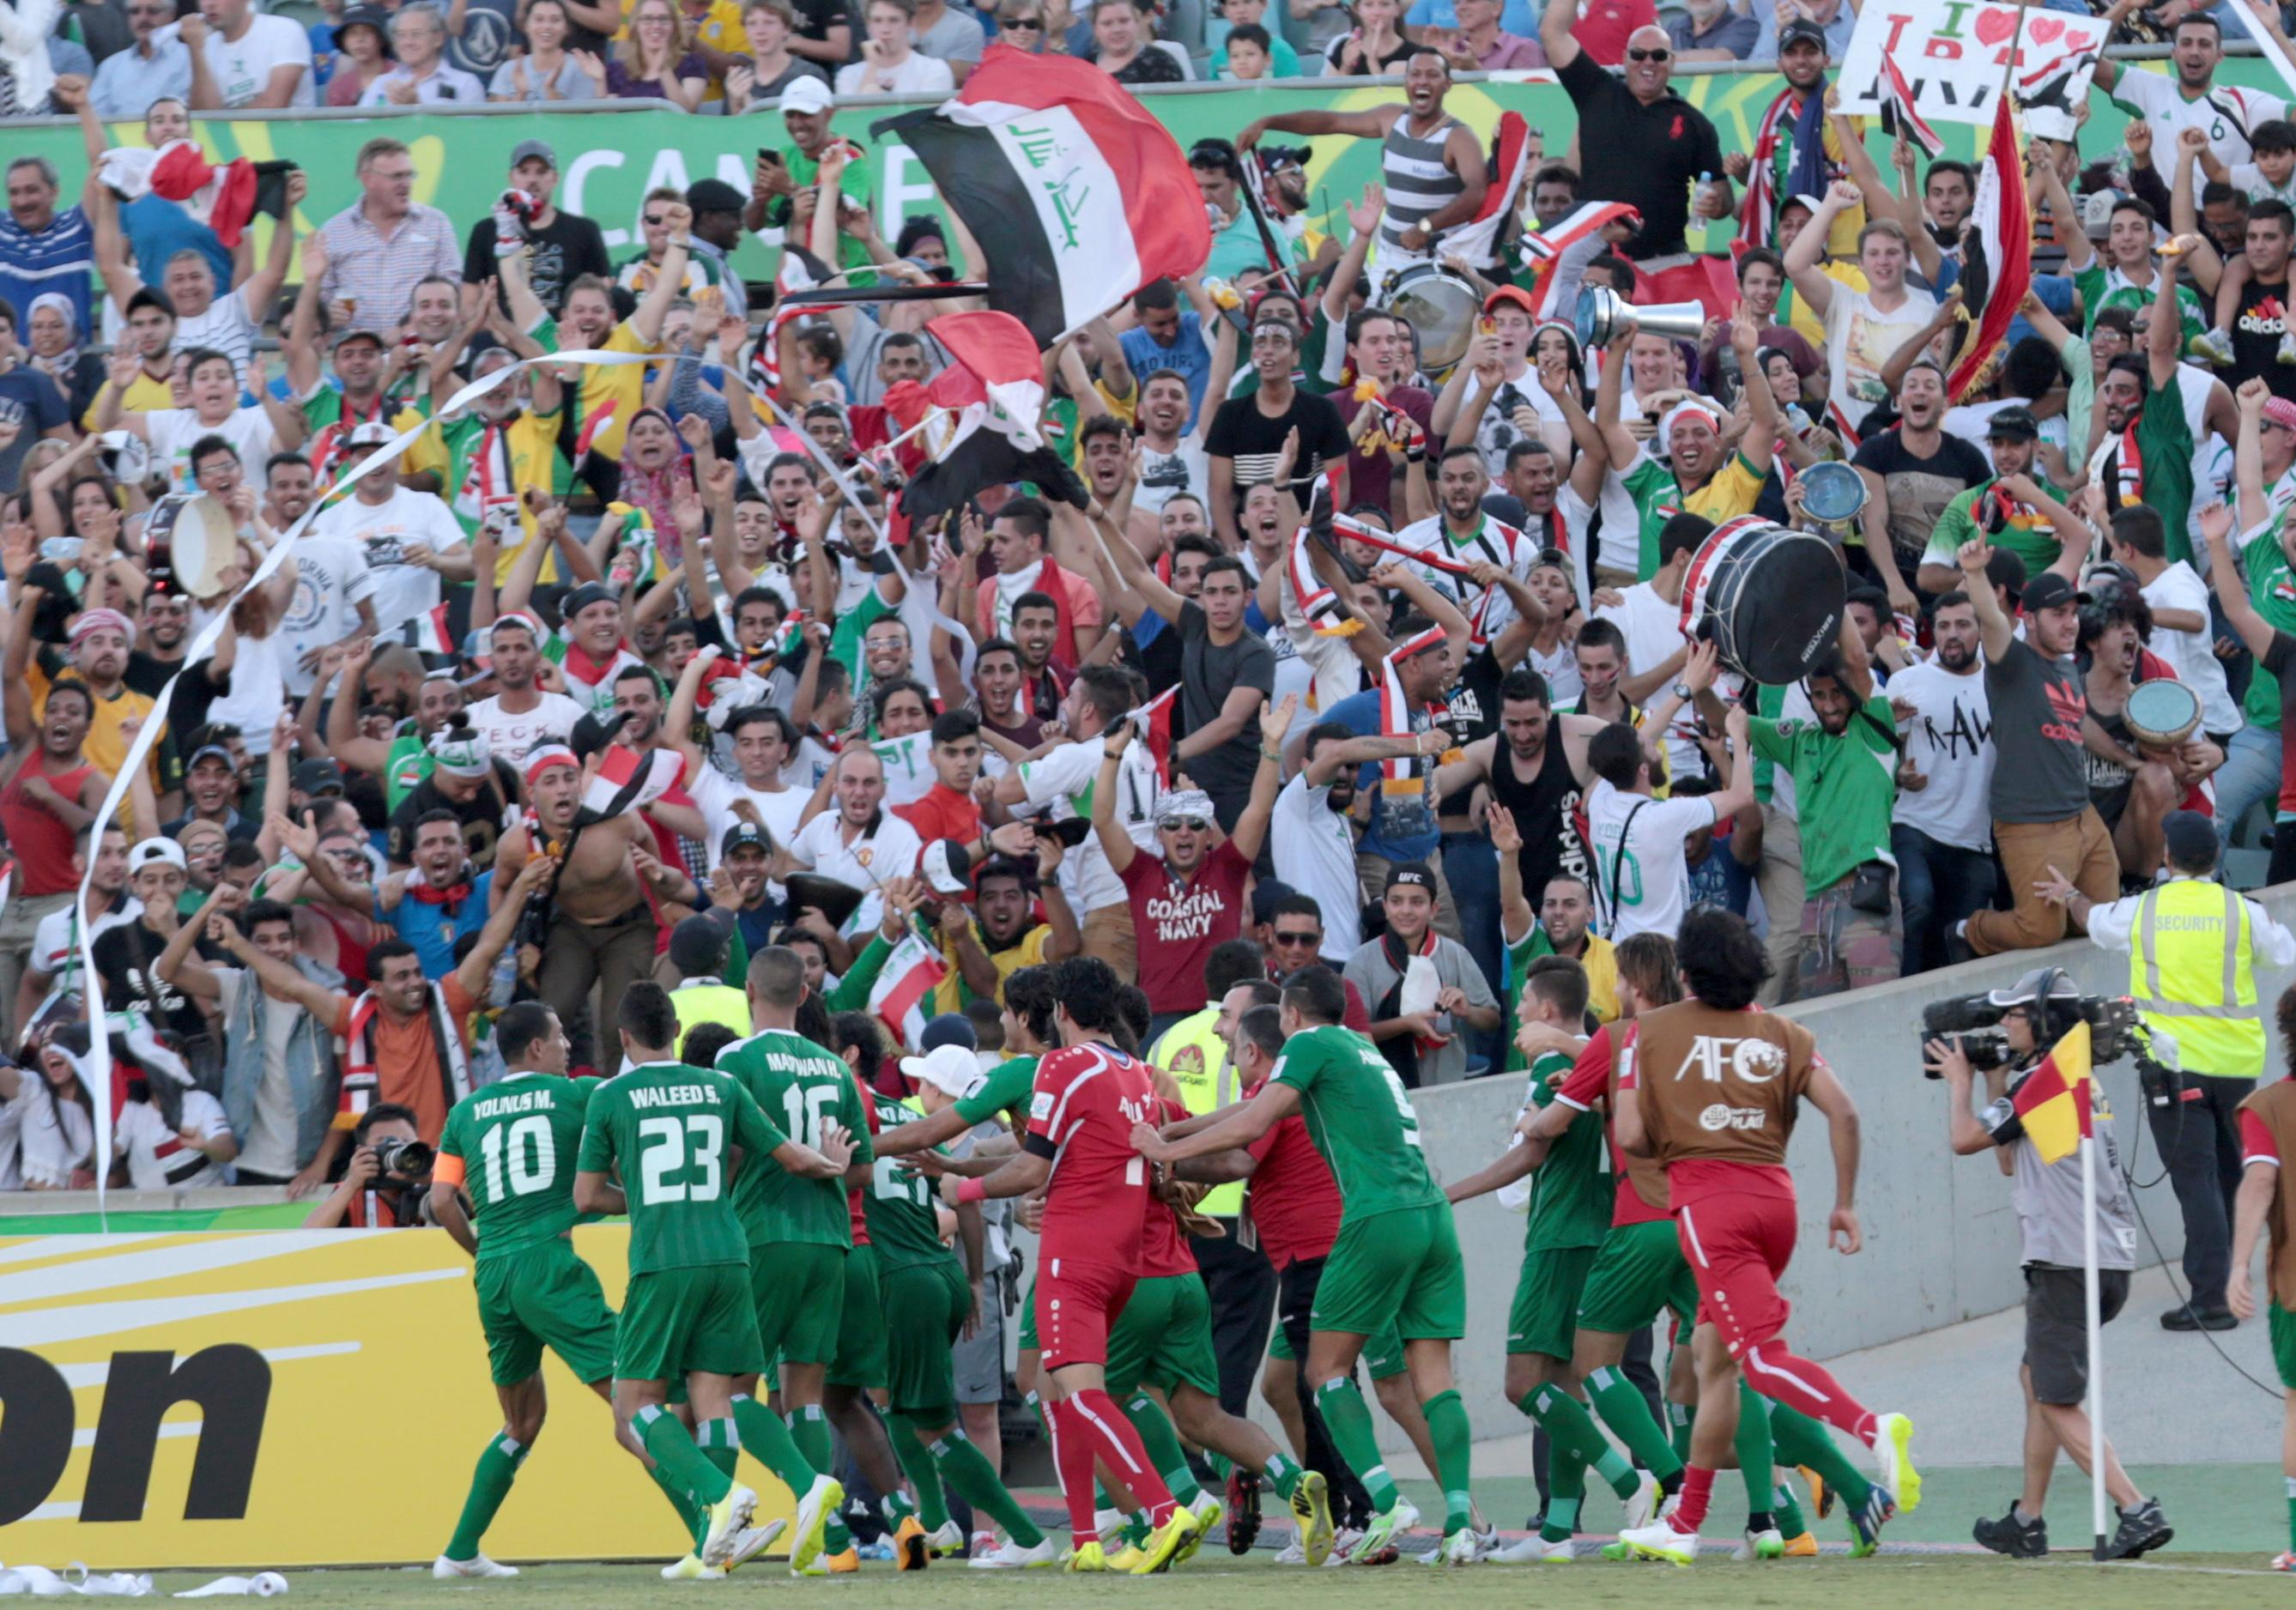 AFC rejects Iran's protest over Asian Cup quarterfinal